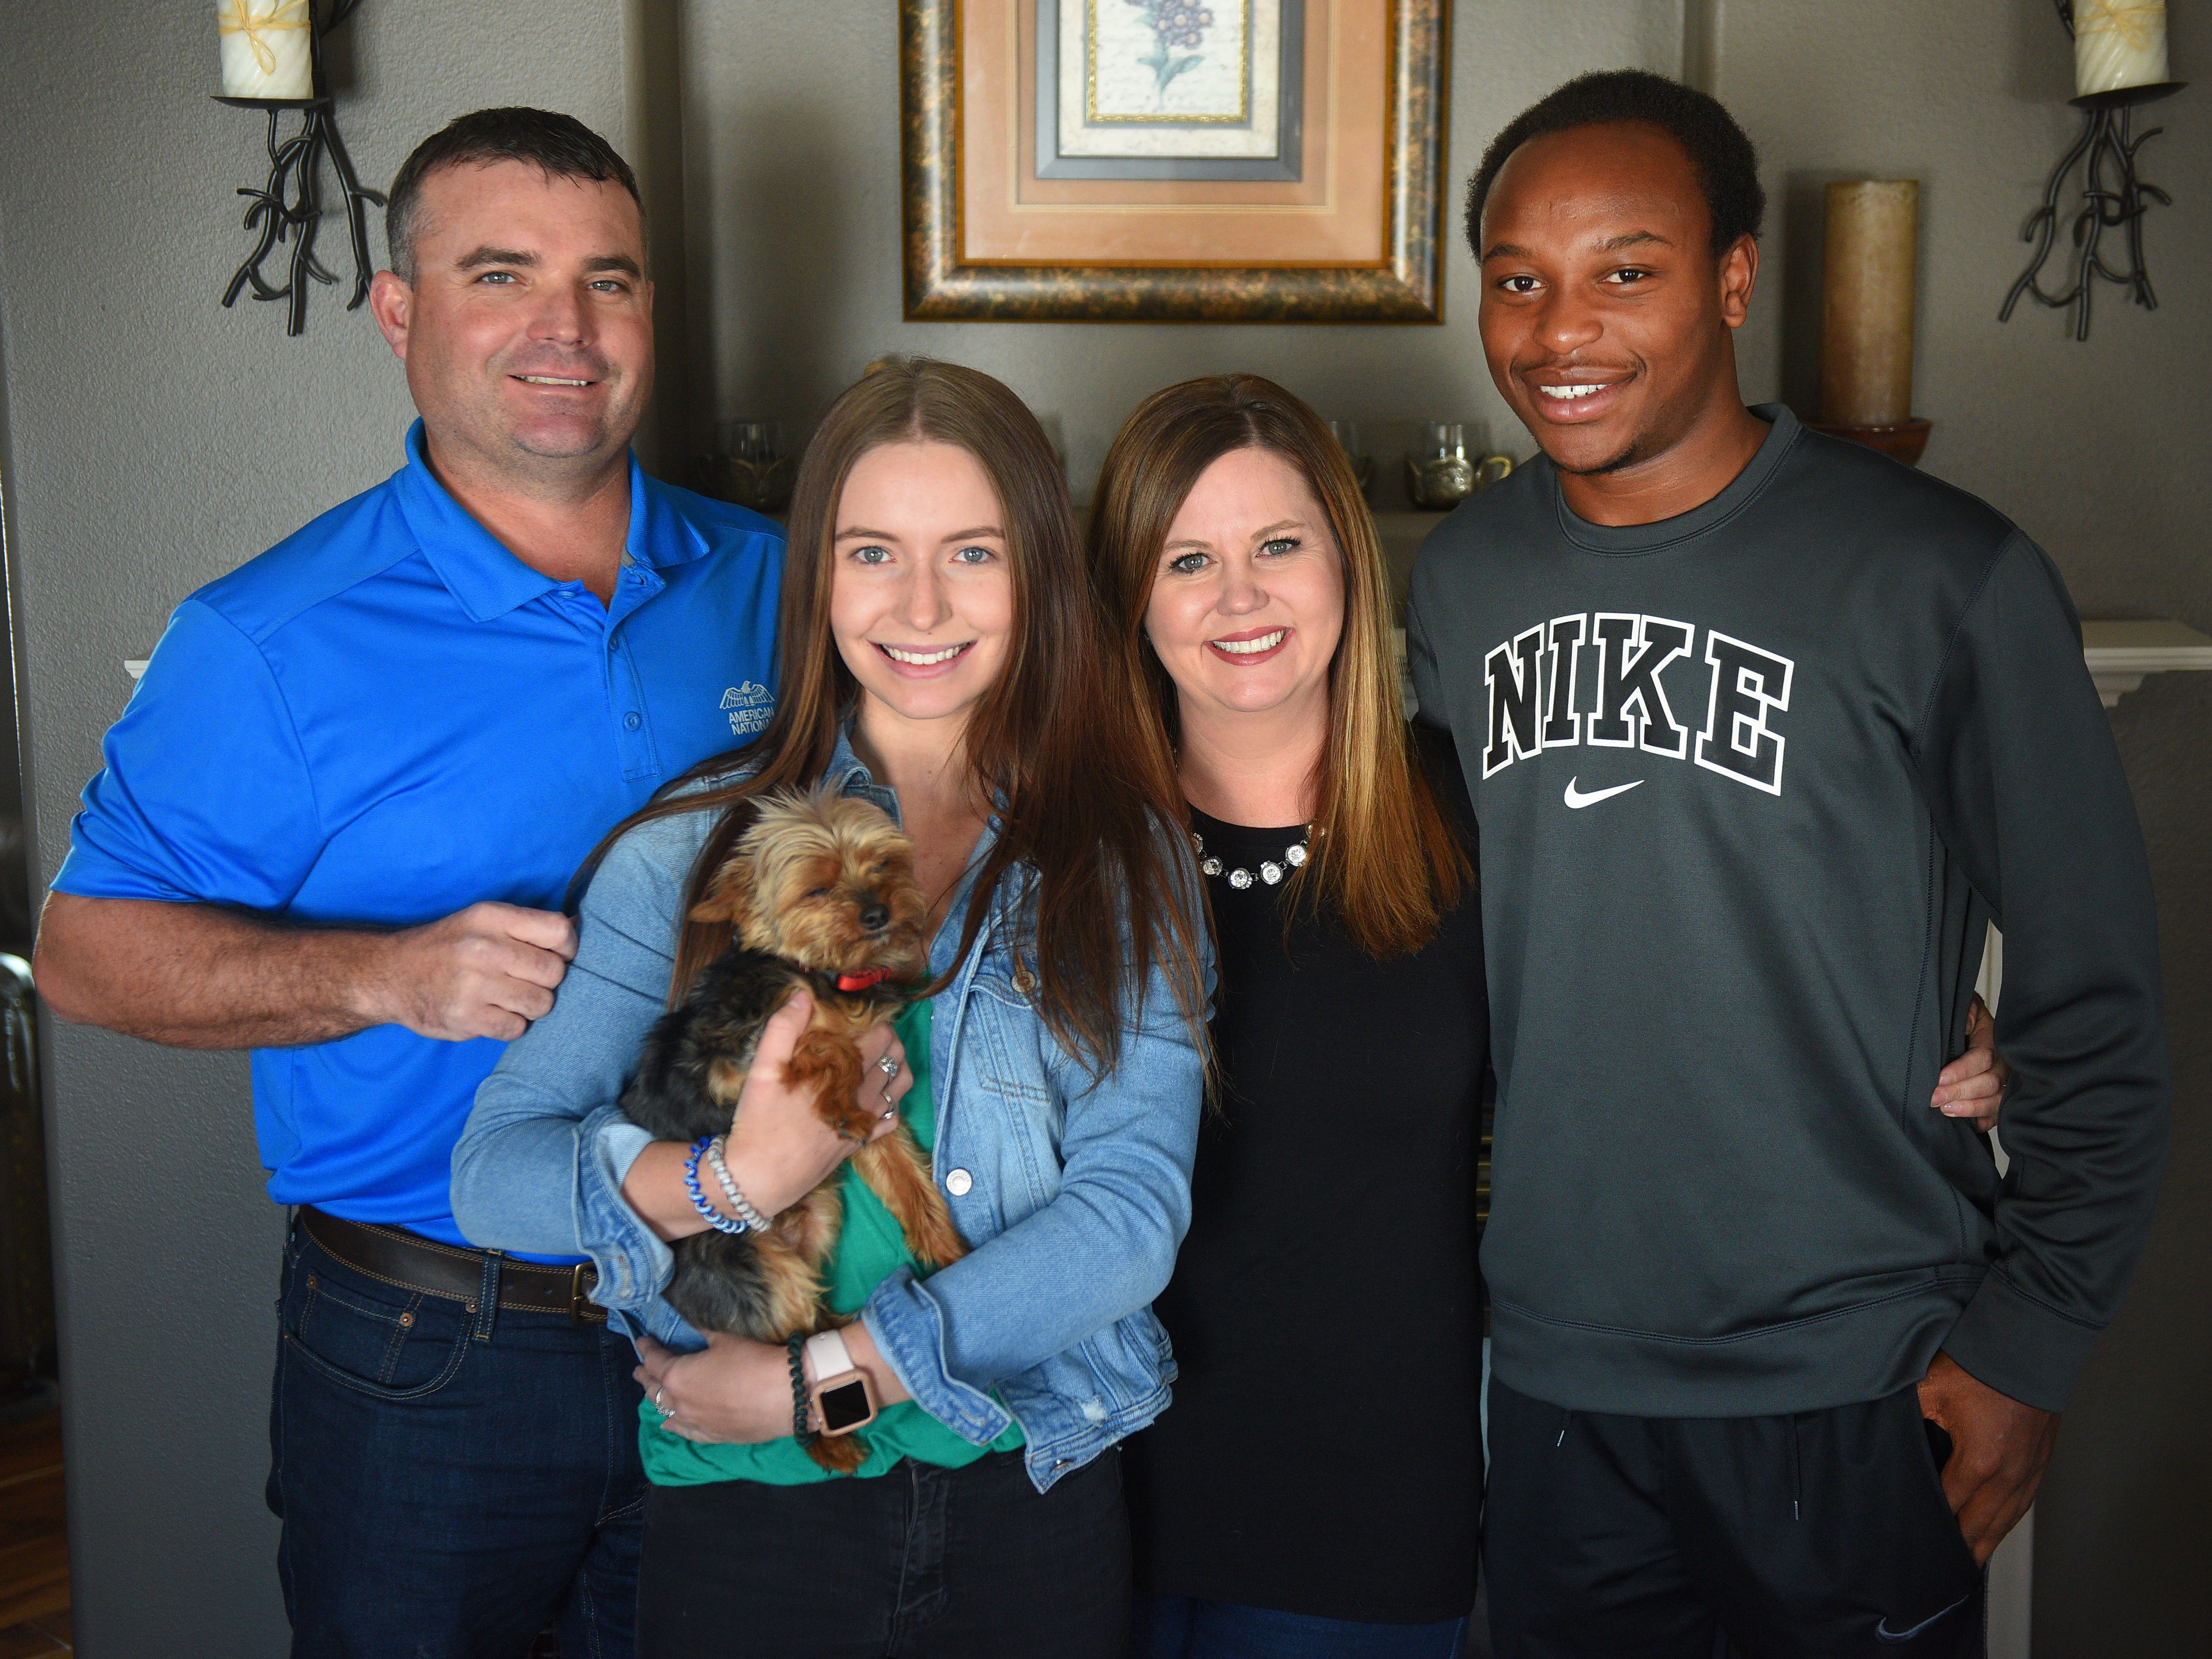 Mike Dorris, from left, Karsyn Dorris, Shanley Dorris and Doyle Brown and their dog Tebow gather for a photo Wednesday, Jan. 16., at Shanley and Mike Dorris' home in Madison. Mike and Shanley started taking care of Doyle after their daughter Karsyn became friends with him at school. Doyle's sisters Lisha and TanChicca live in Madison but they have seven other girls they take care of. Doyle wanted more male role models in his life.